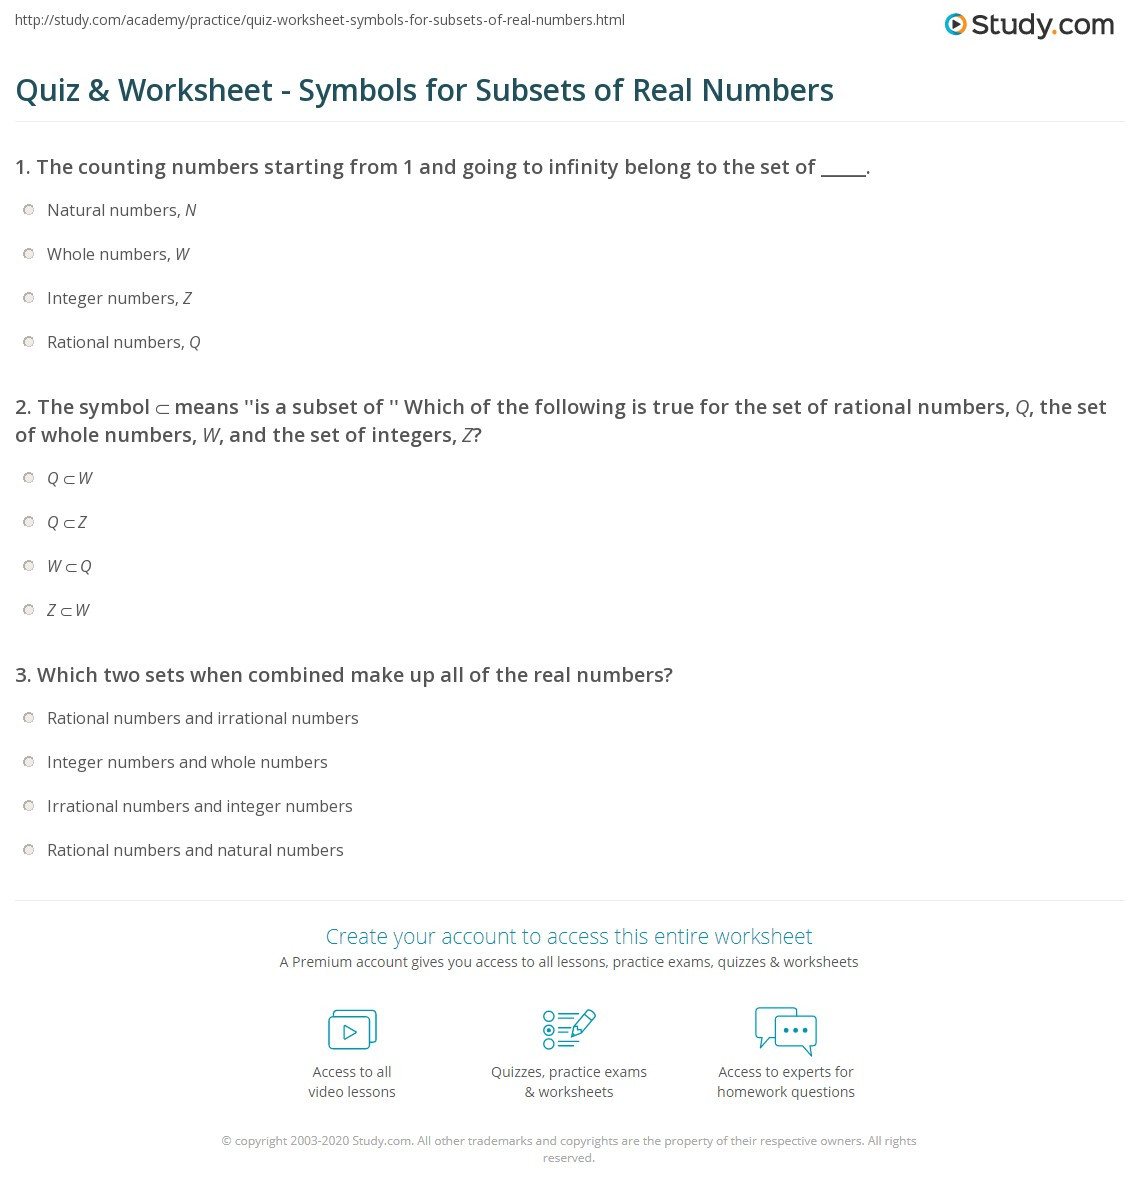 Quiz & Worksheet Symbols for Subsets of Real Numbers